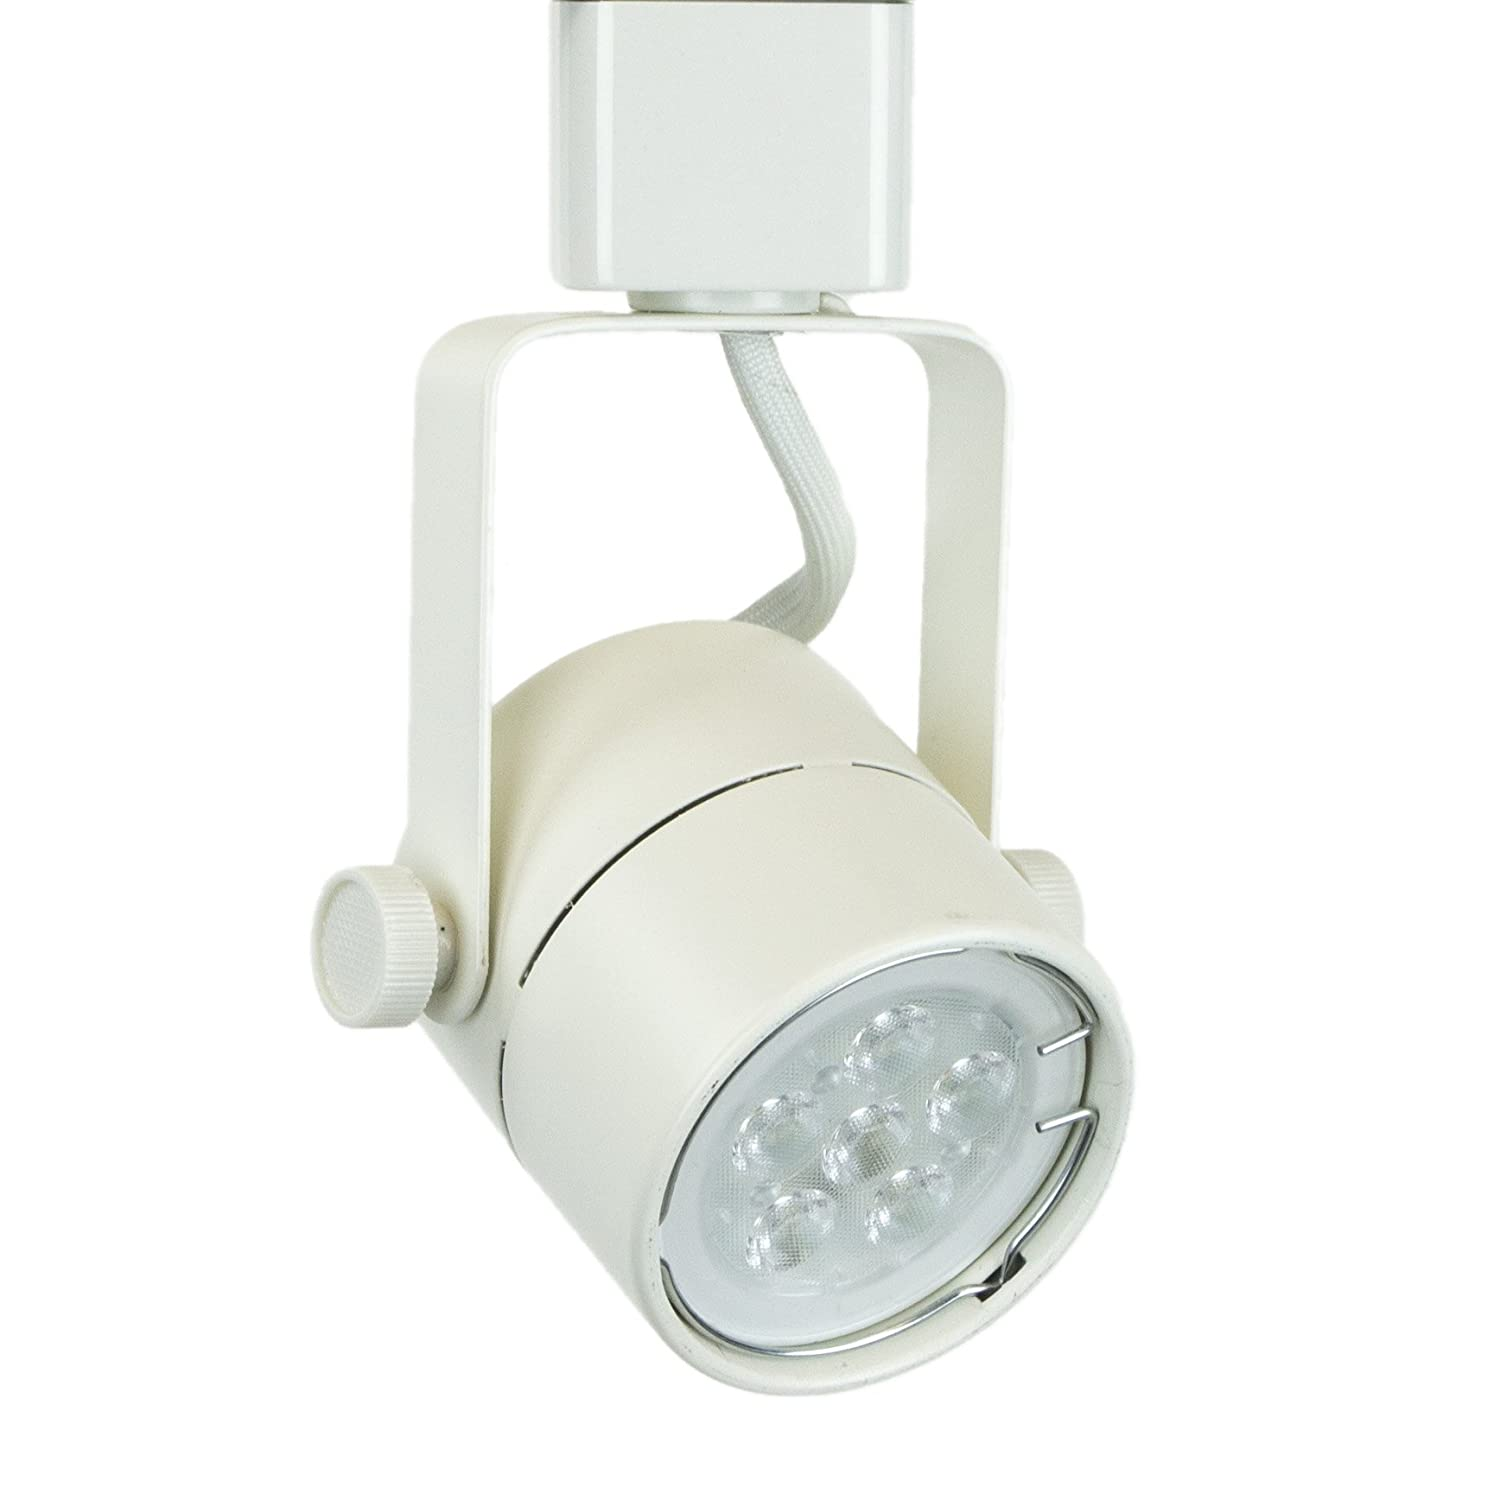 Direct lighting 50154l white gu10 led track lighting head with 75 direct lighting 50154l white gu10 led track lighting head with 75w led bulb amazon aloadofball Image collections